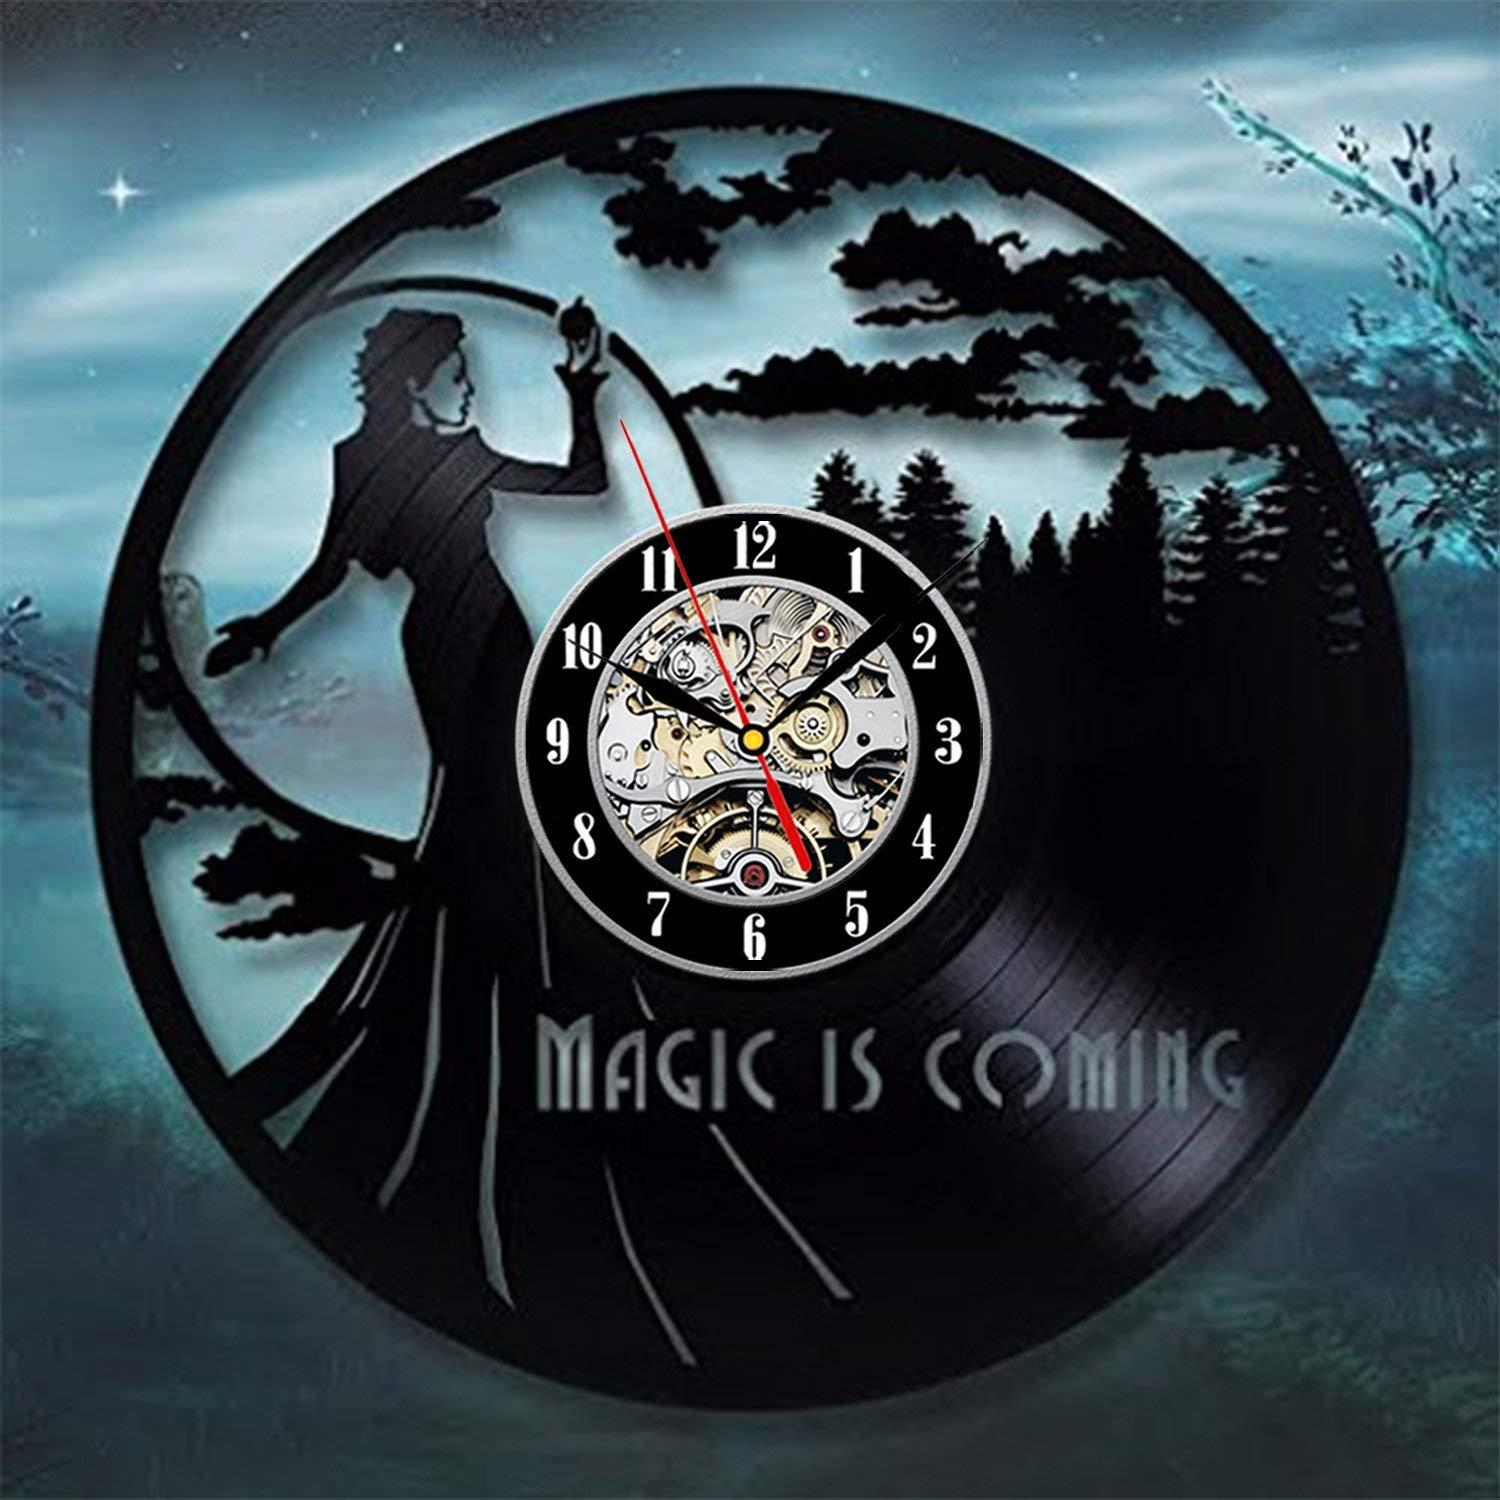 Magic Once Upon A Time Vintage Theme Decor Ultra Home Decorative